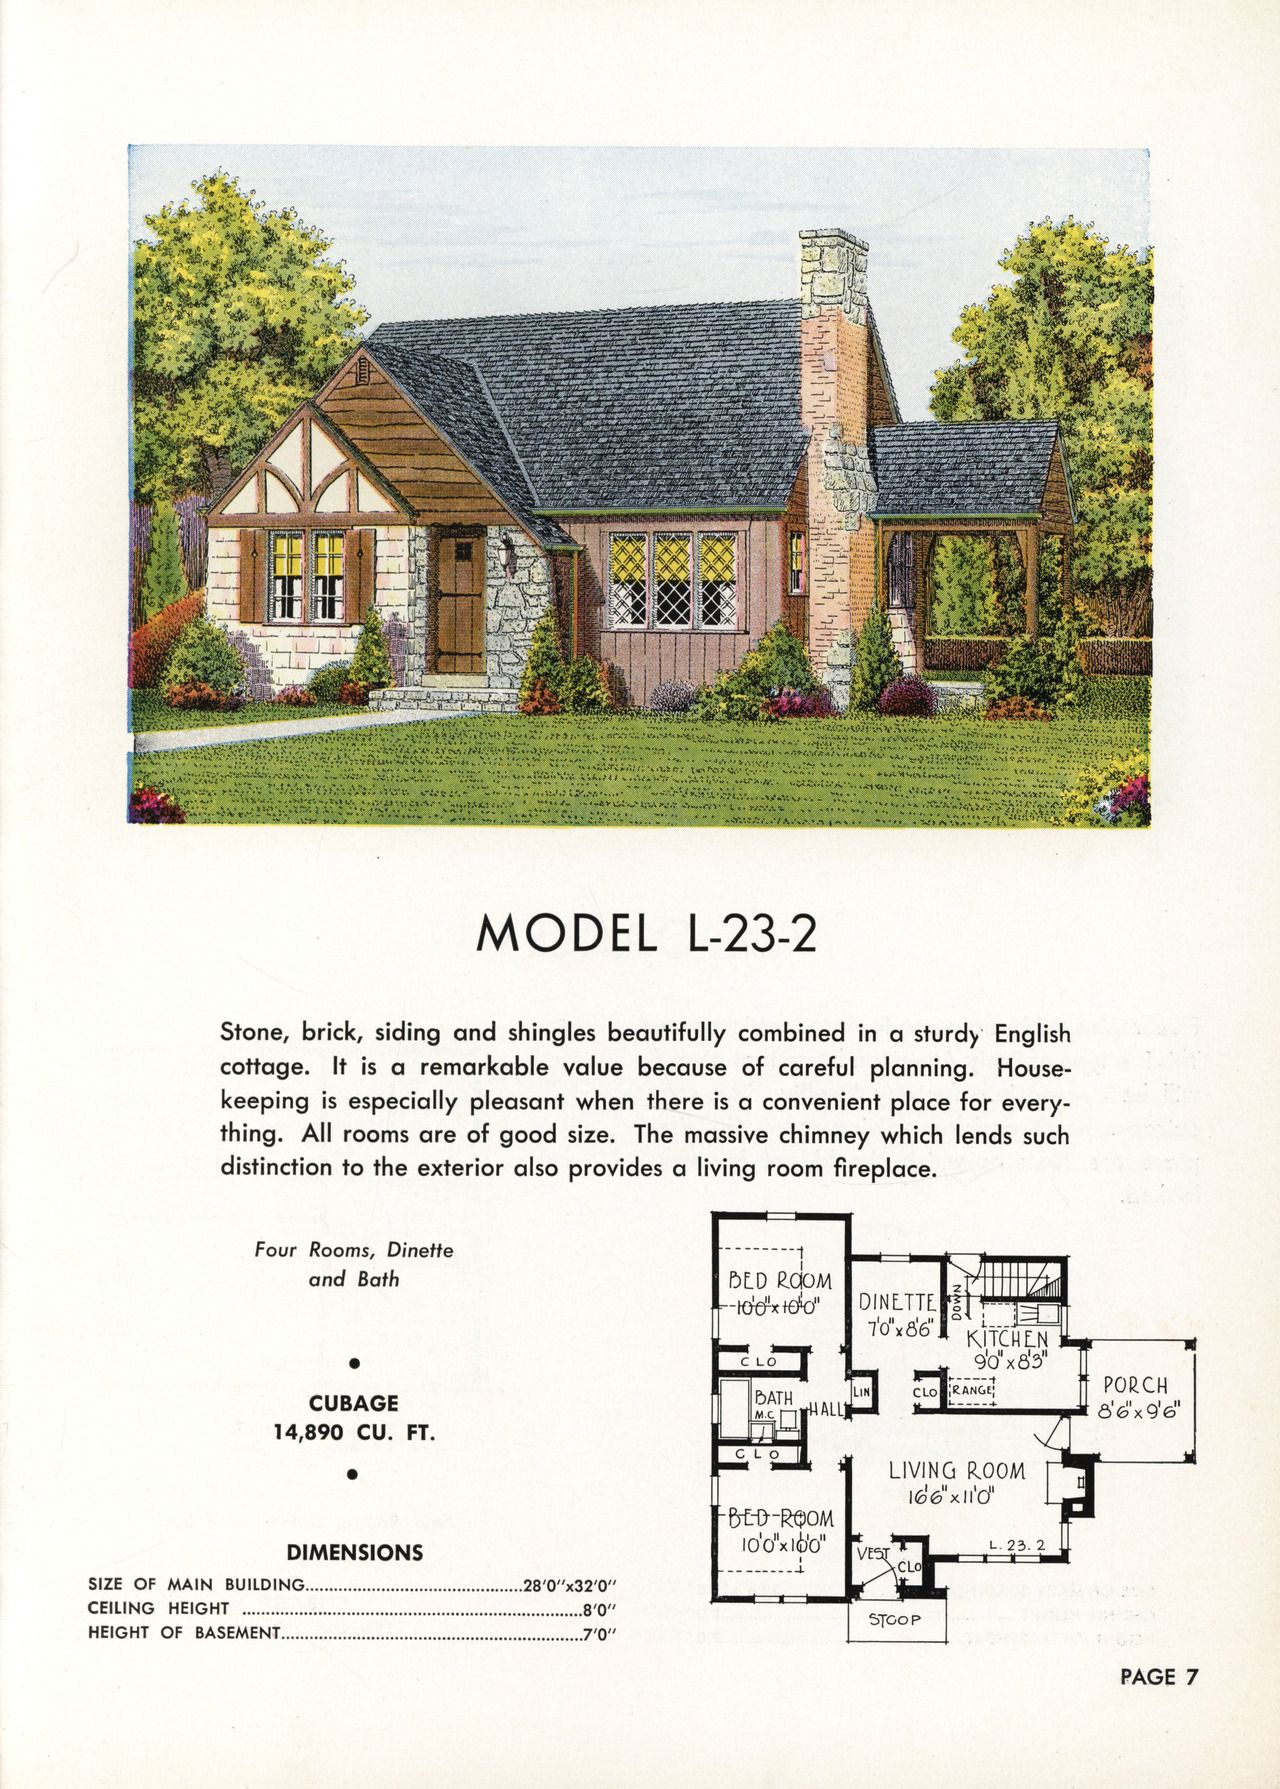 United States 1941 Model L 23 2 An English Style Cottage With An Exceptional Number Of Exterior Finish Materials S House Plans Cottage Exterior Vintage House